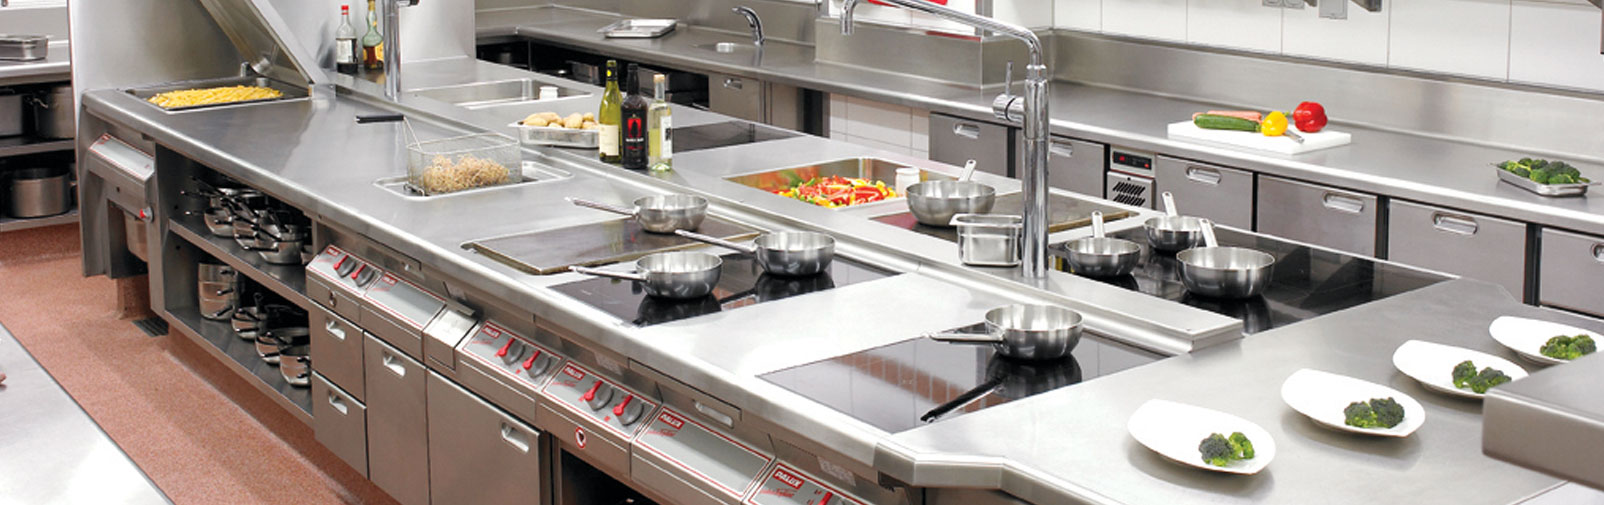 Restaurant Equipment Manufacturers Banner-Shree Manek Kitchen Equipments Pvt. Ltd.